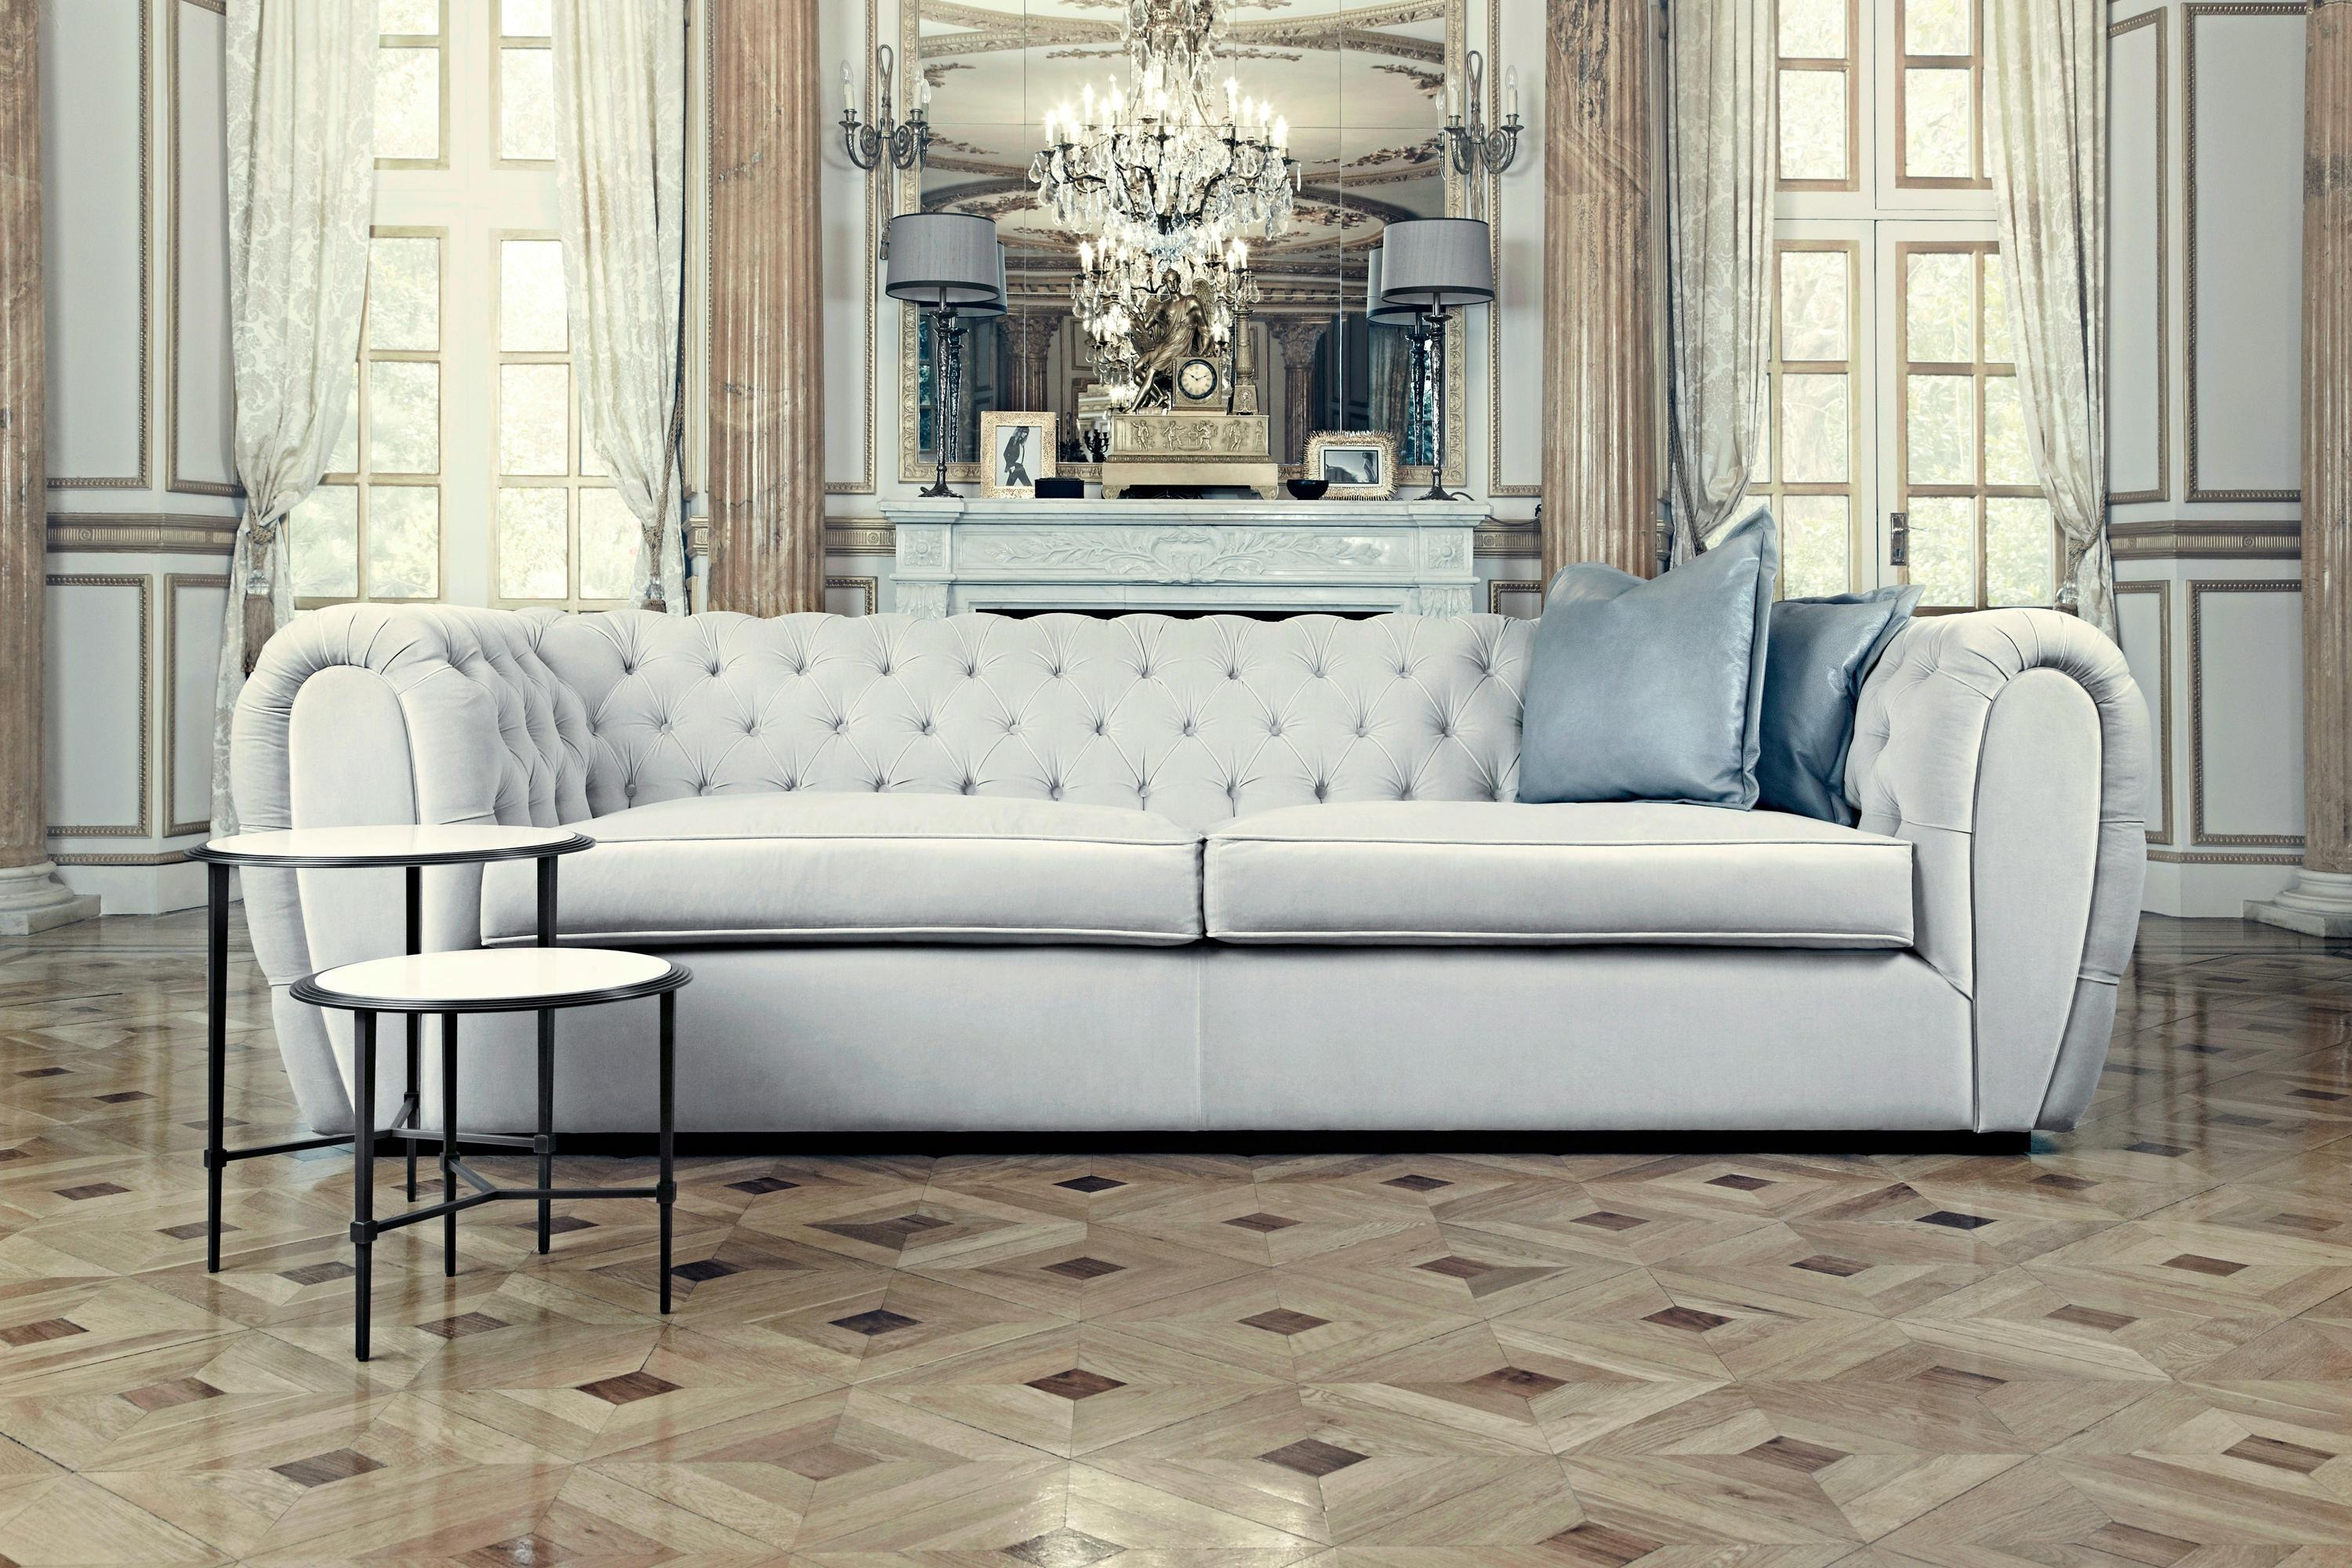 Windsor Sofa – Lounge Sofas From The Sofa & Chair Company Ltd For Windsor Sofas (Image 14 of 20)